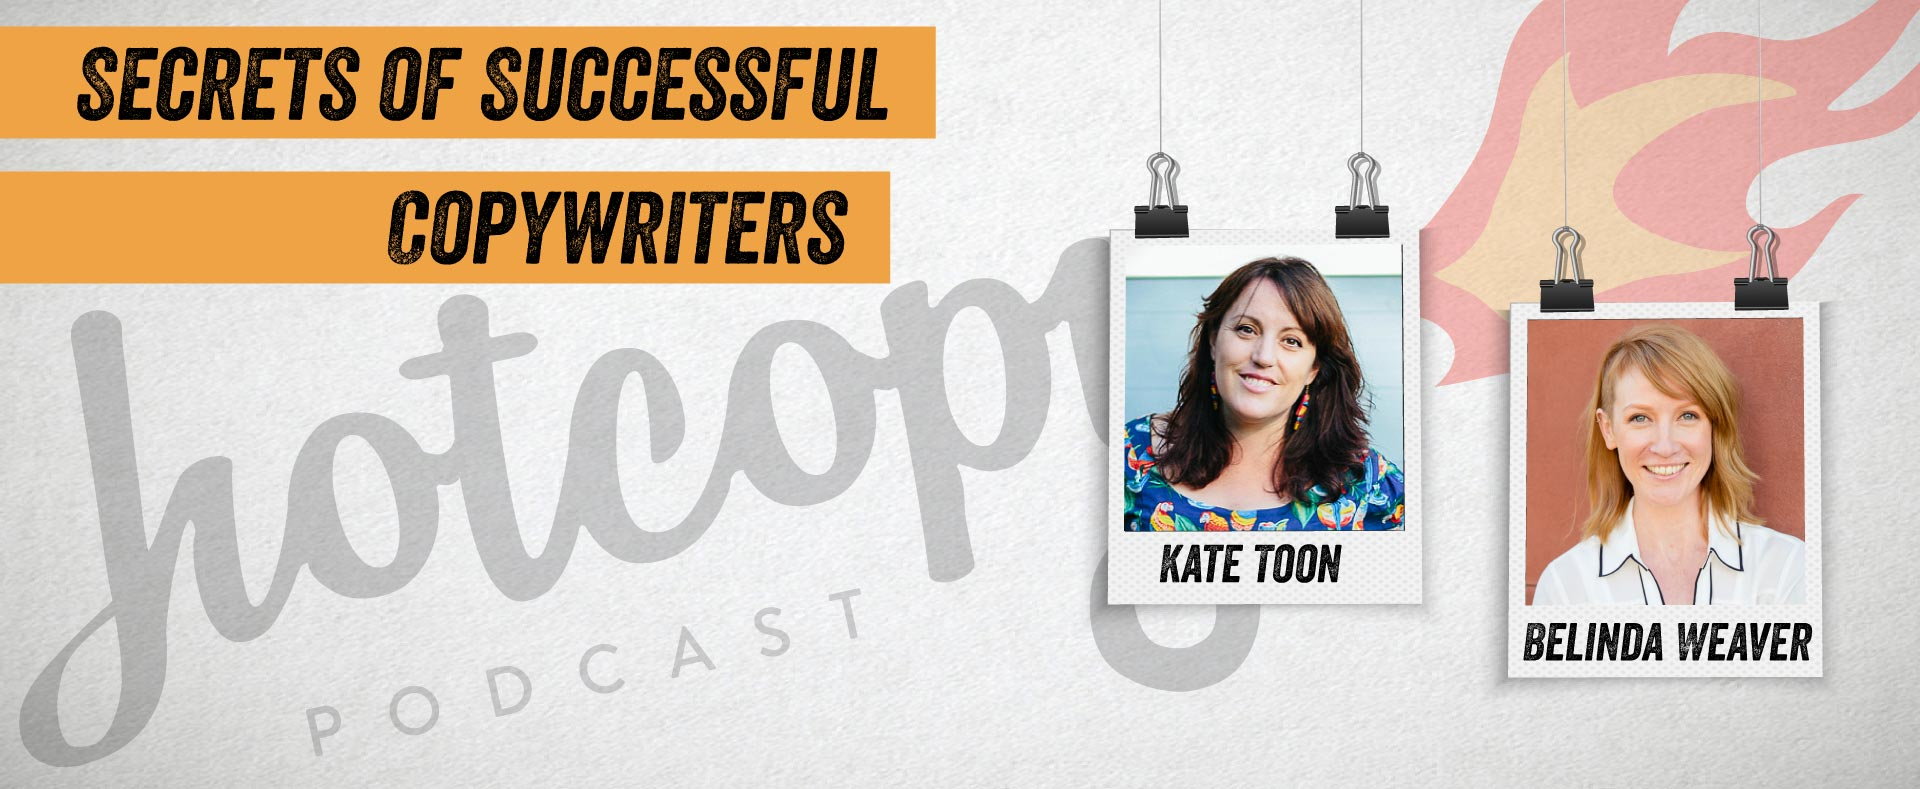 Hot Copy Podcast: Secrets of Successful Copywriters